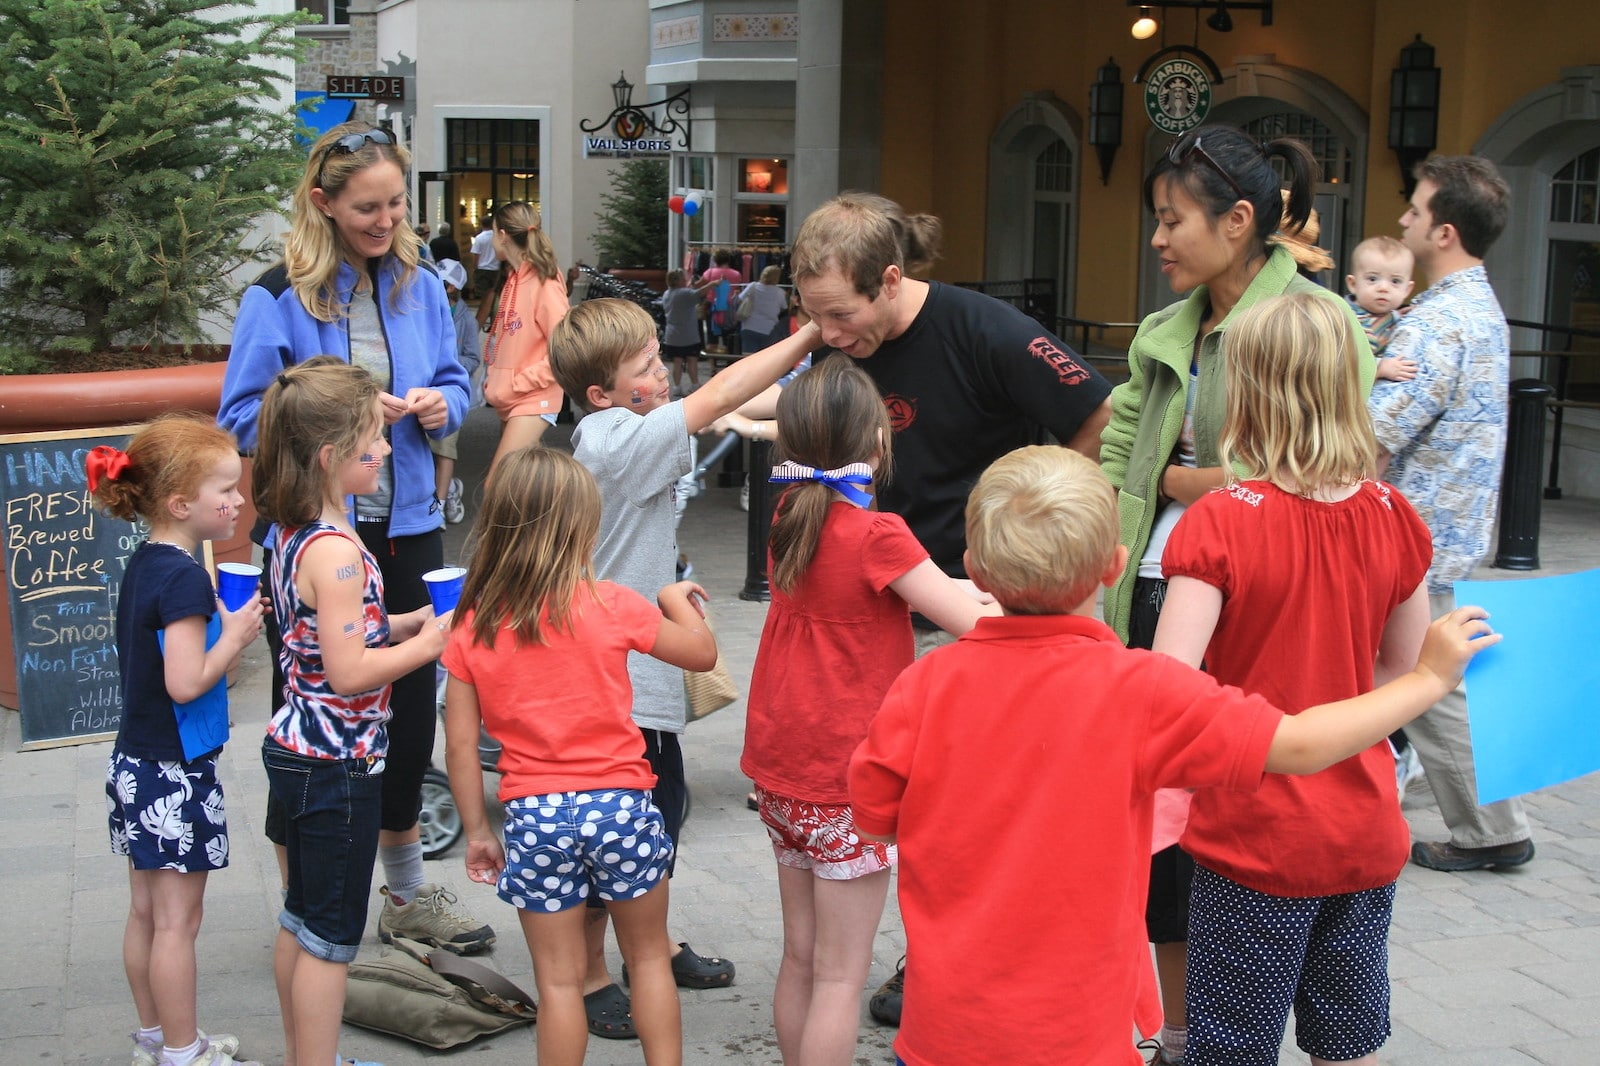 Image of children getting temporary tattoos at Vail's July 4th festivities in Colorado